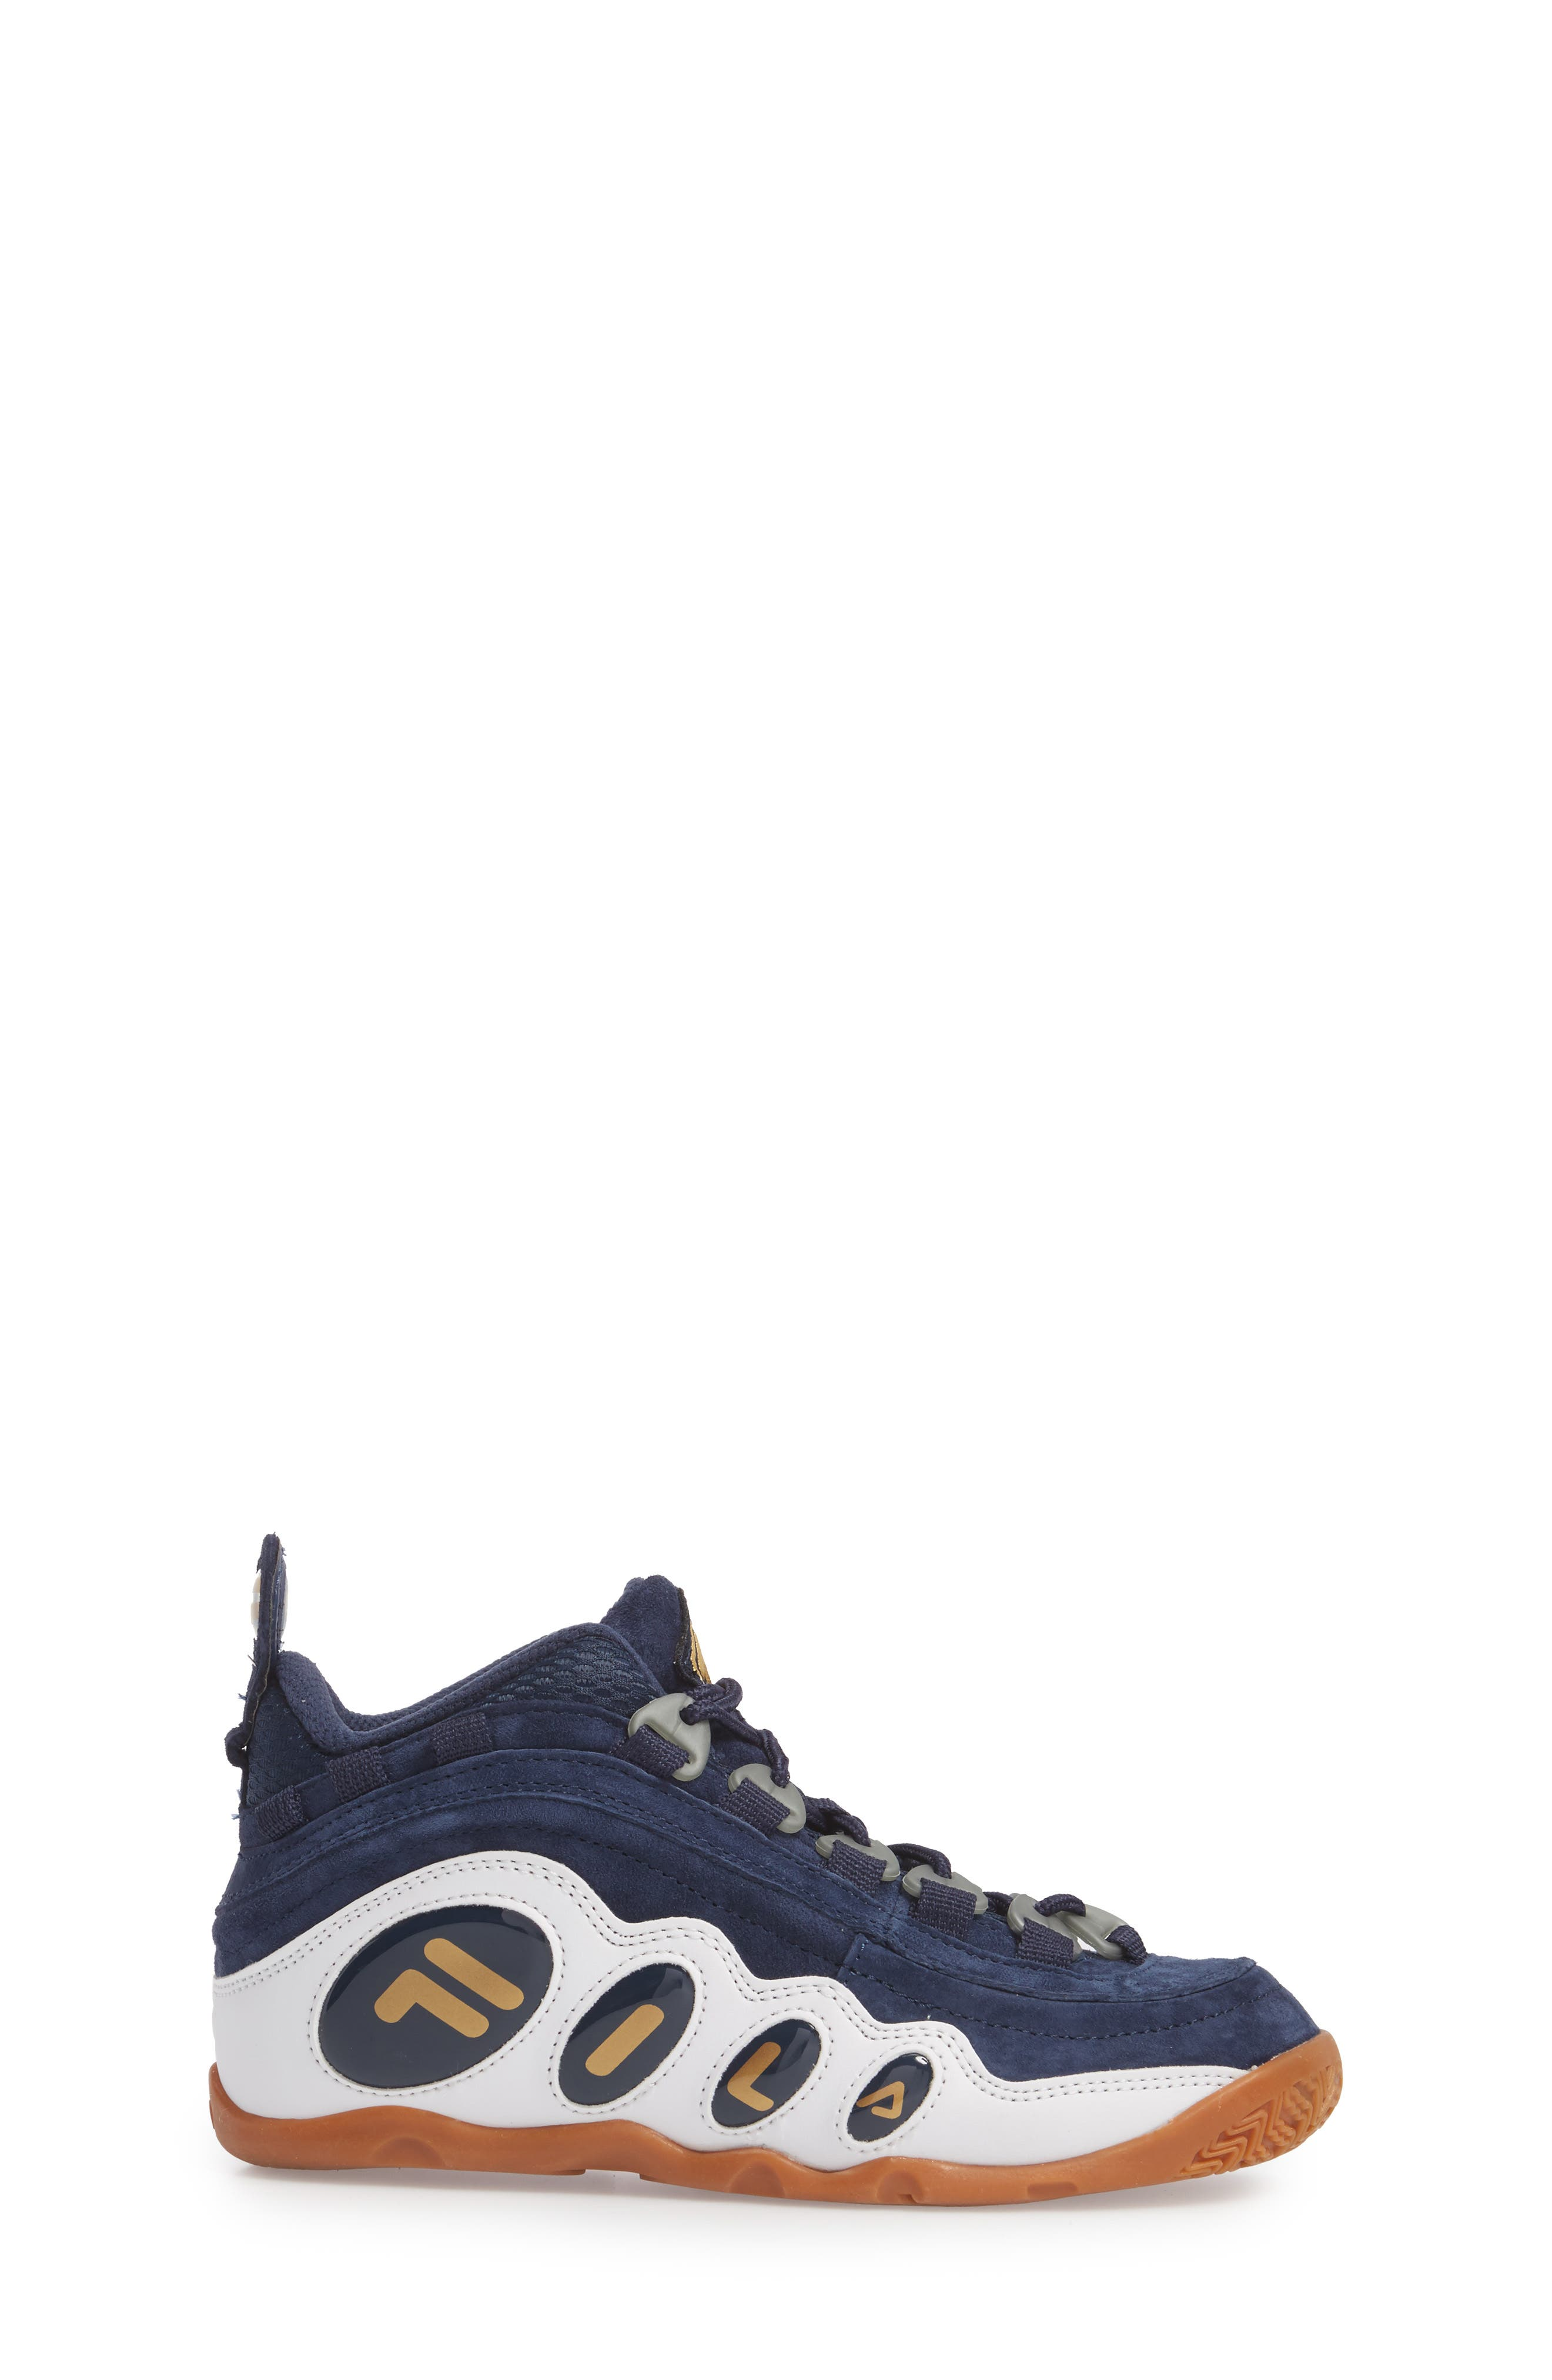 Bubbles Mid Top Sneaker Boot,                             Alternate thumbnail 3, color,                             NAVY/ GOLD/ WHITE